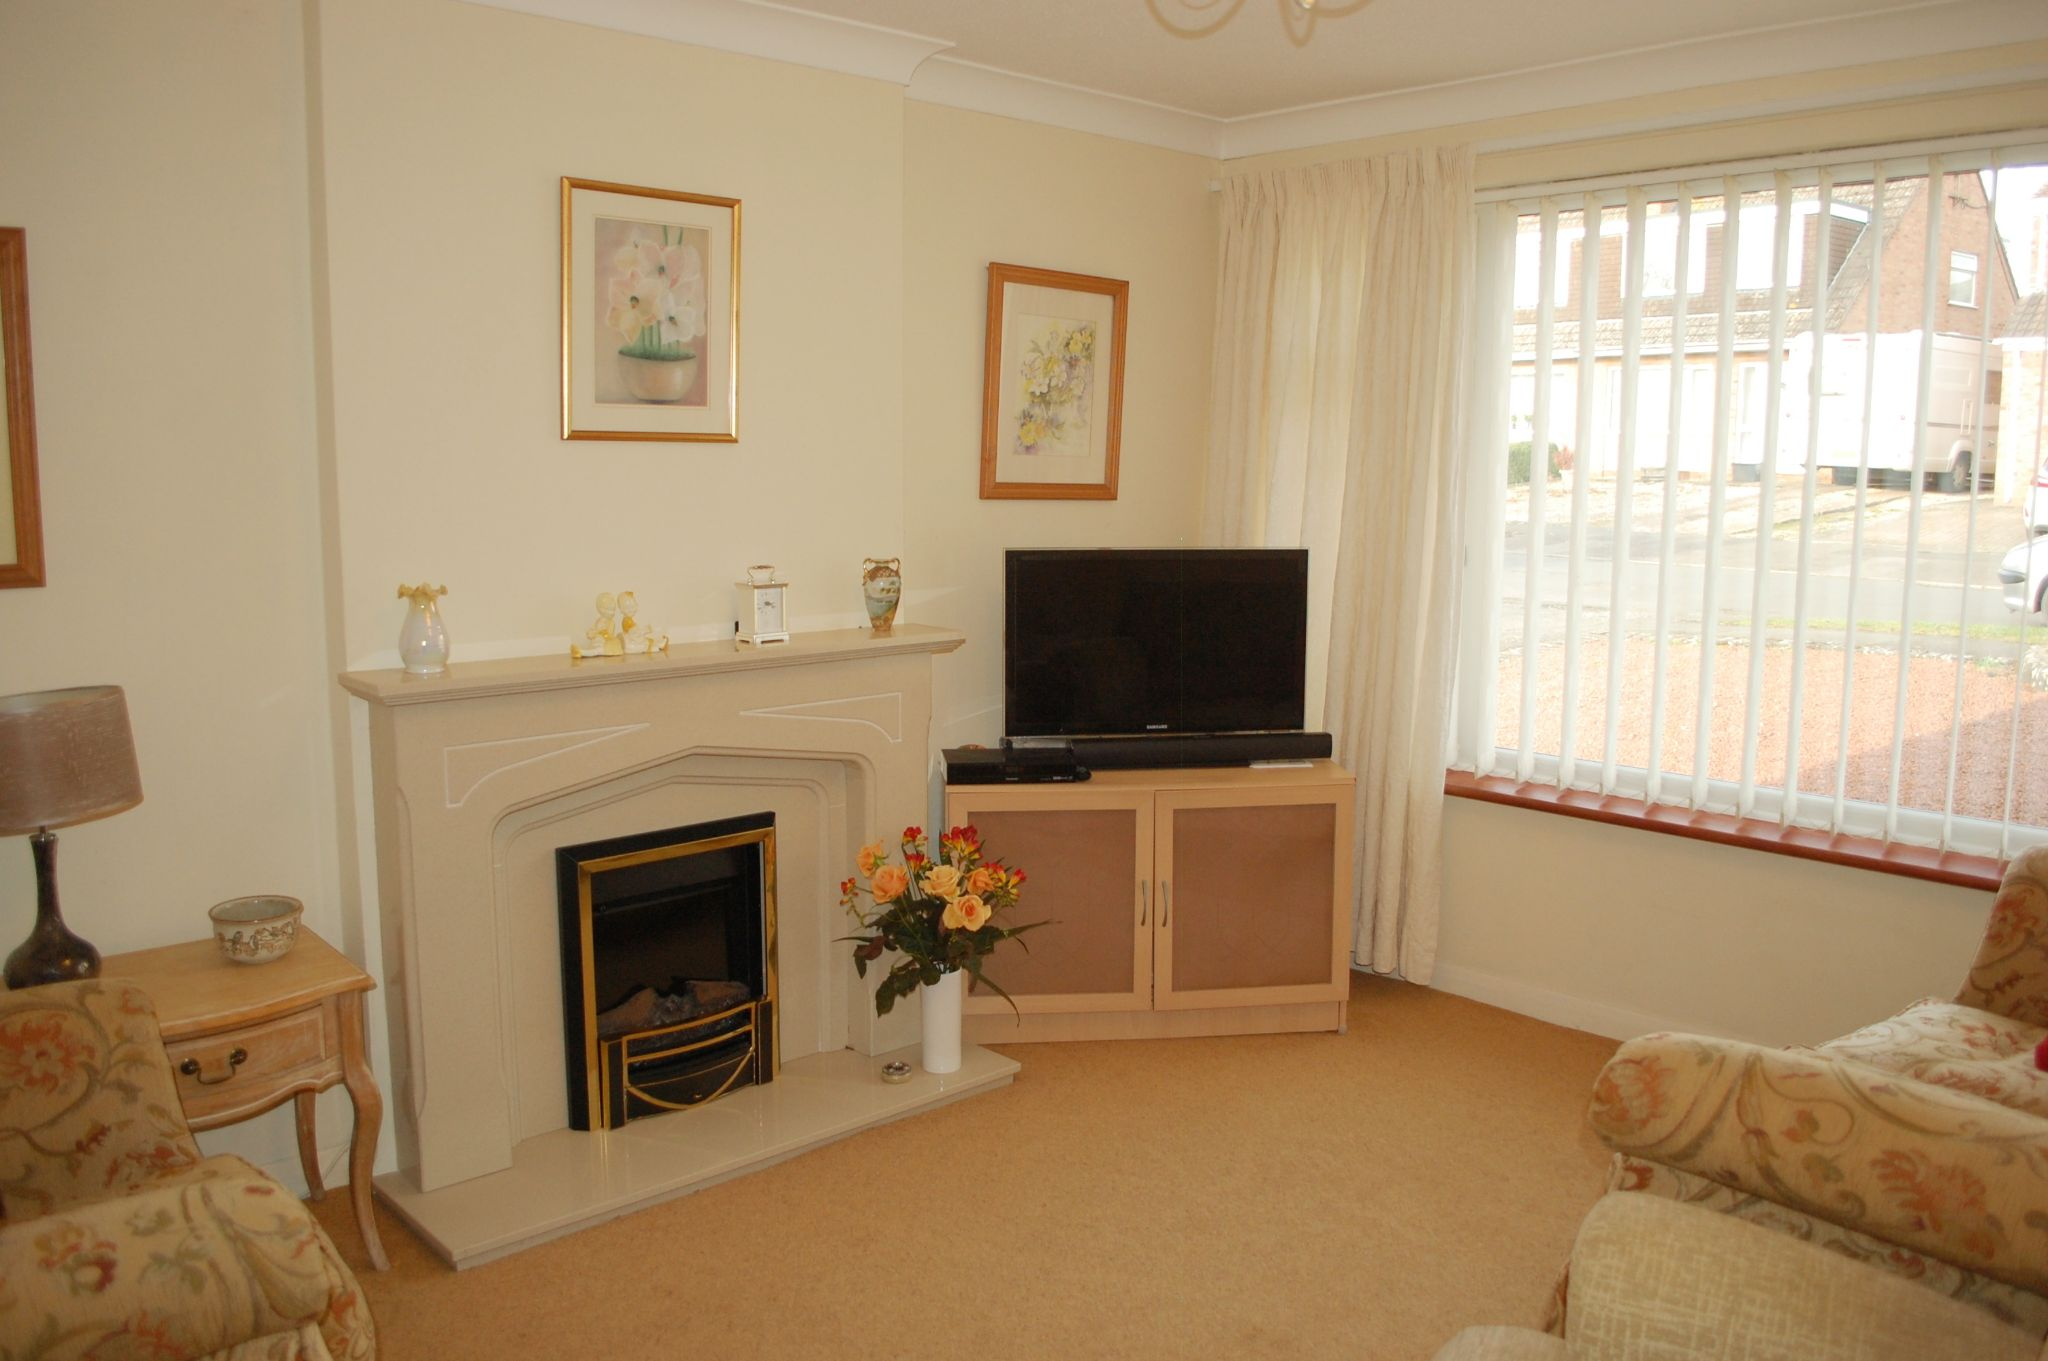 3 bedroom detached house SSTC Alcester - Photograph 6